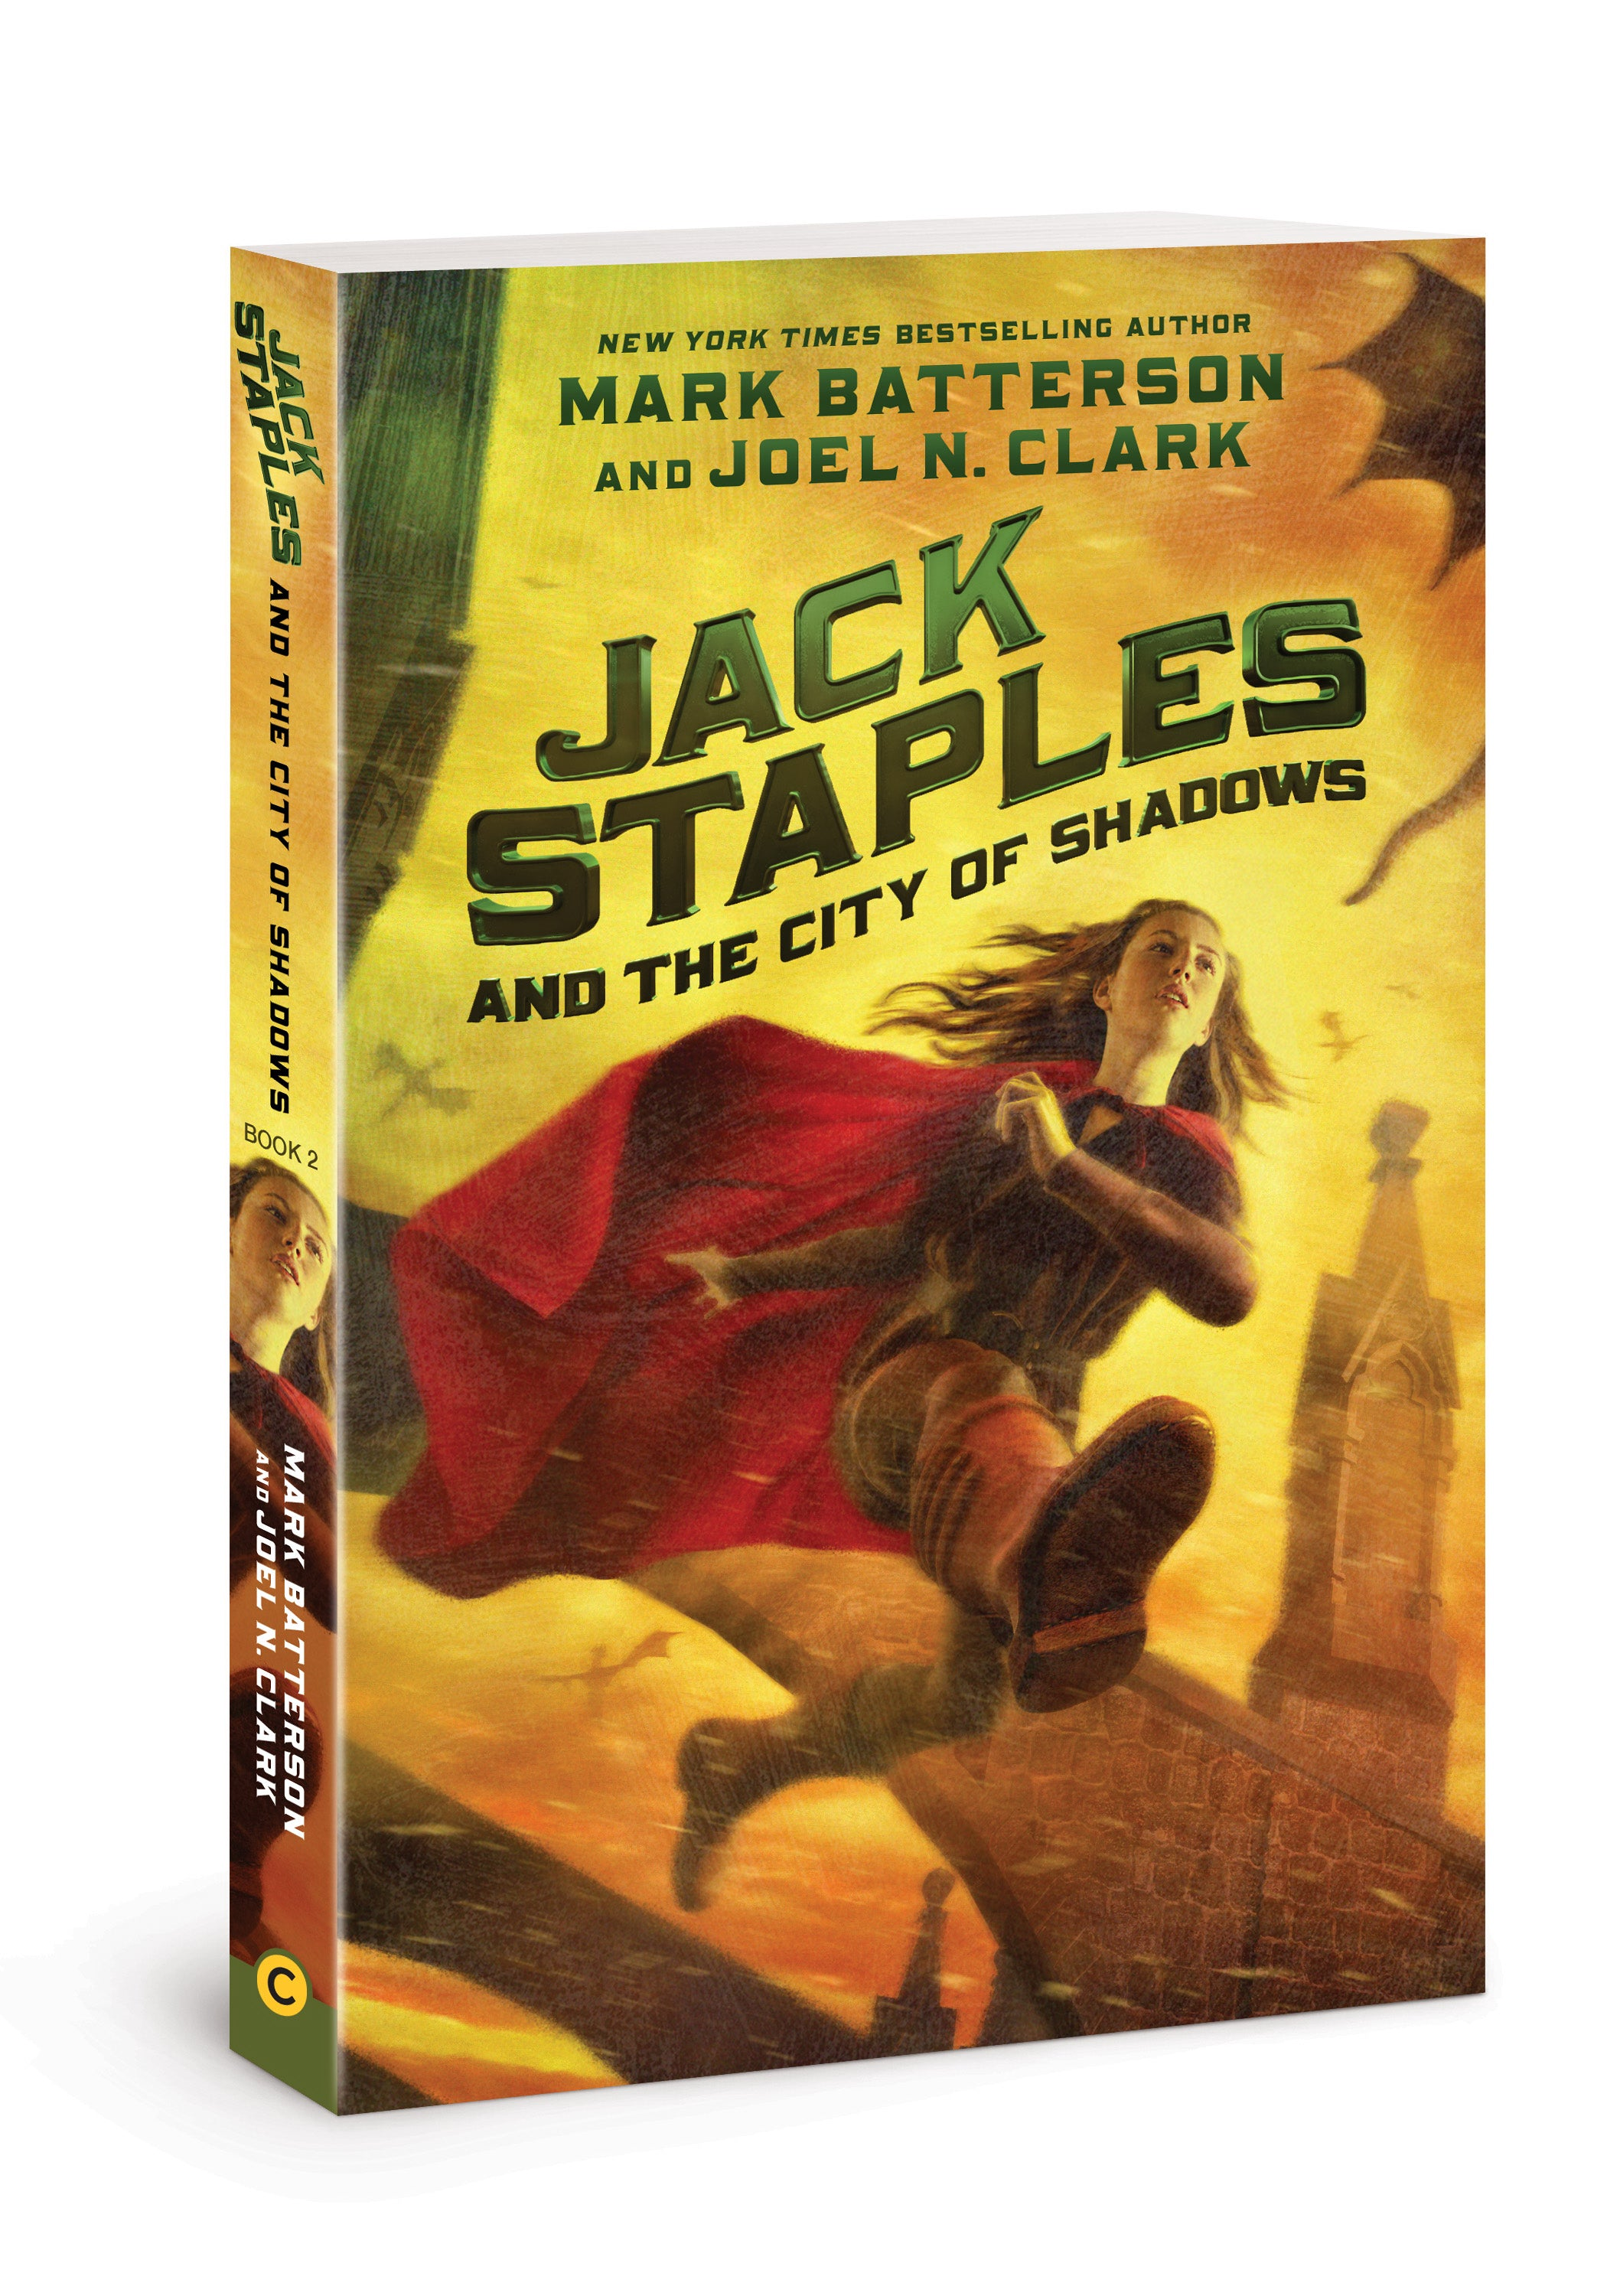 Jack Staples And The City Of Shadows (Repack)